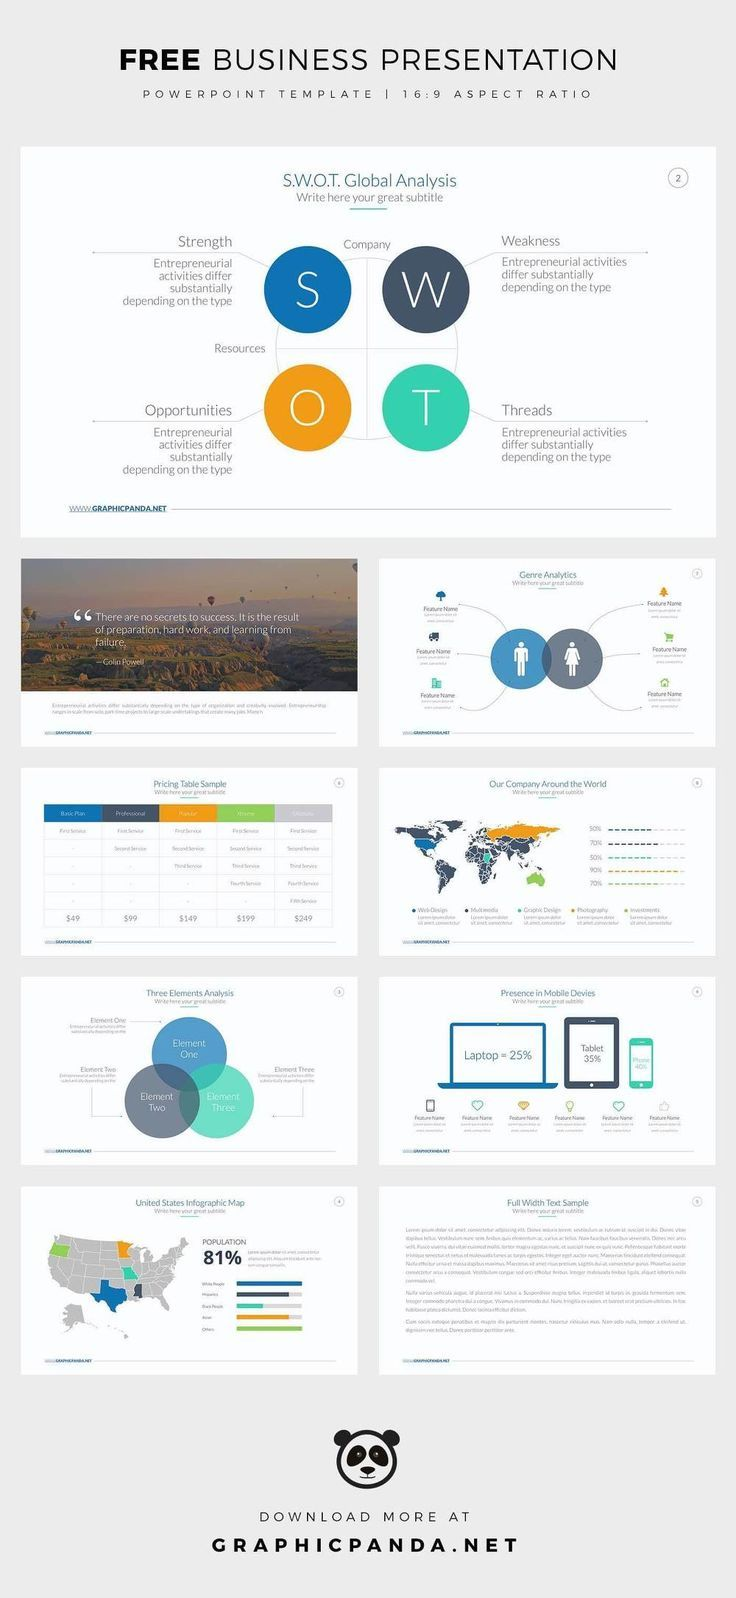 ppt free business ppt free business presentation powerpoint template ppt wajeb